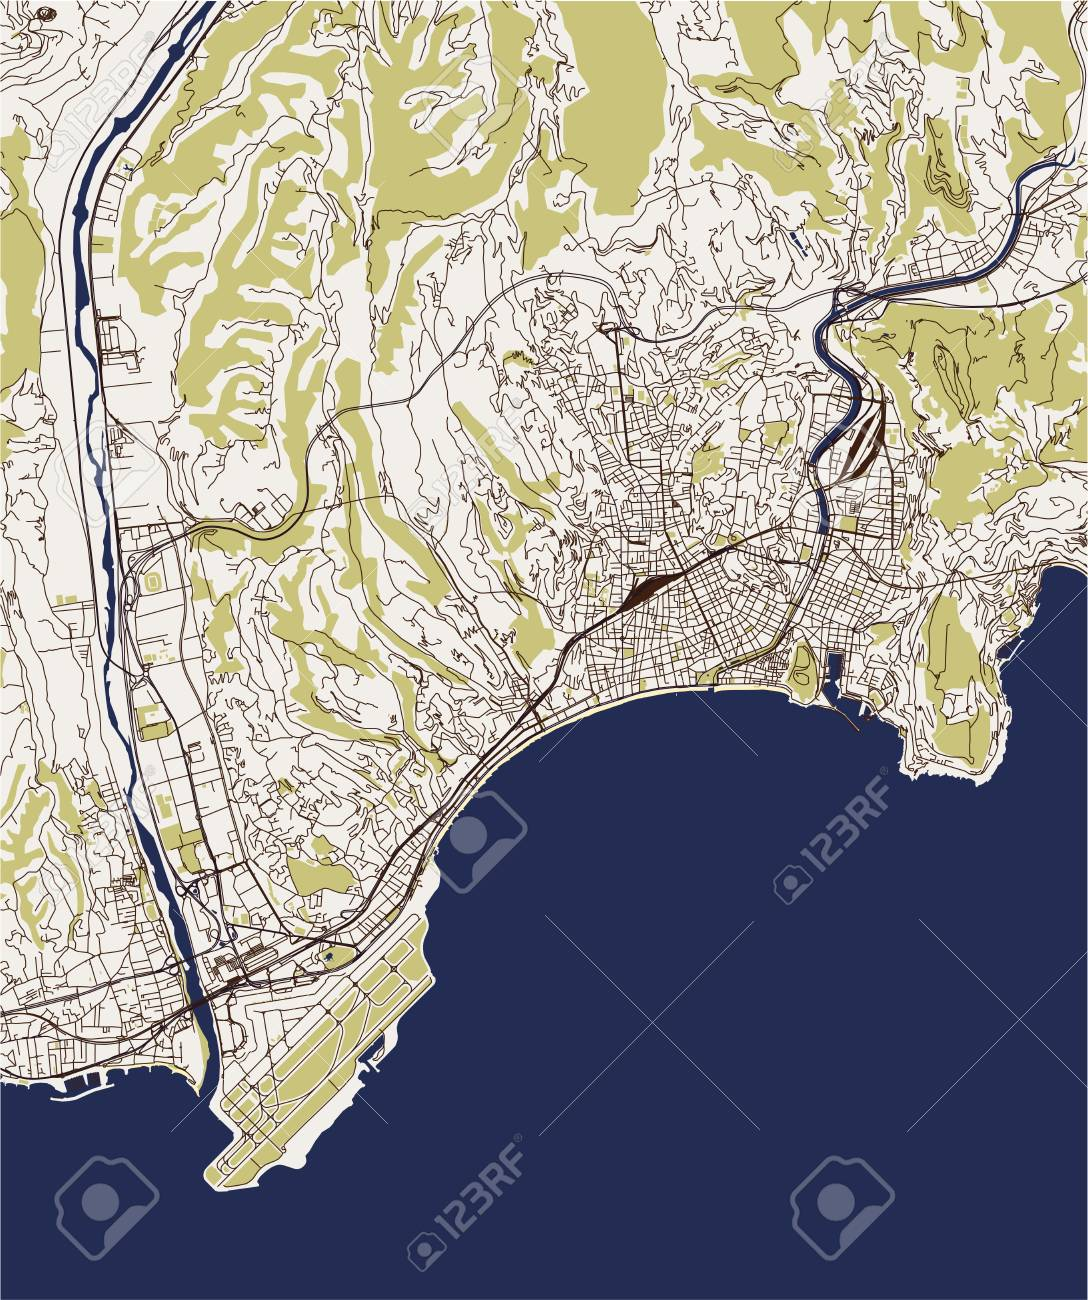 Map Of France French Riviera.Vector Map Of The City Of Nice Provence Alpes Cote Dazur Alpes Maritimes